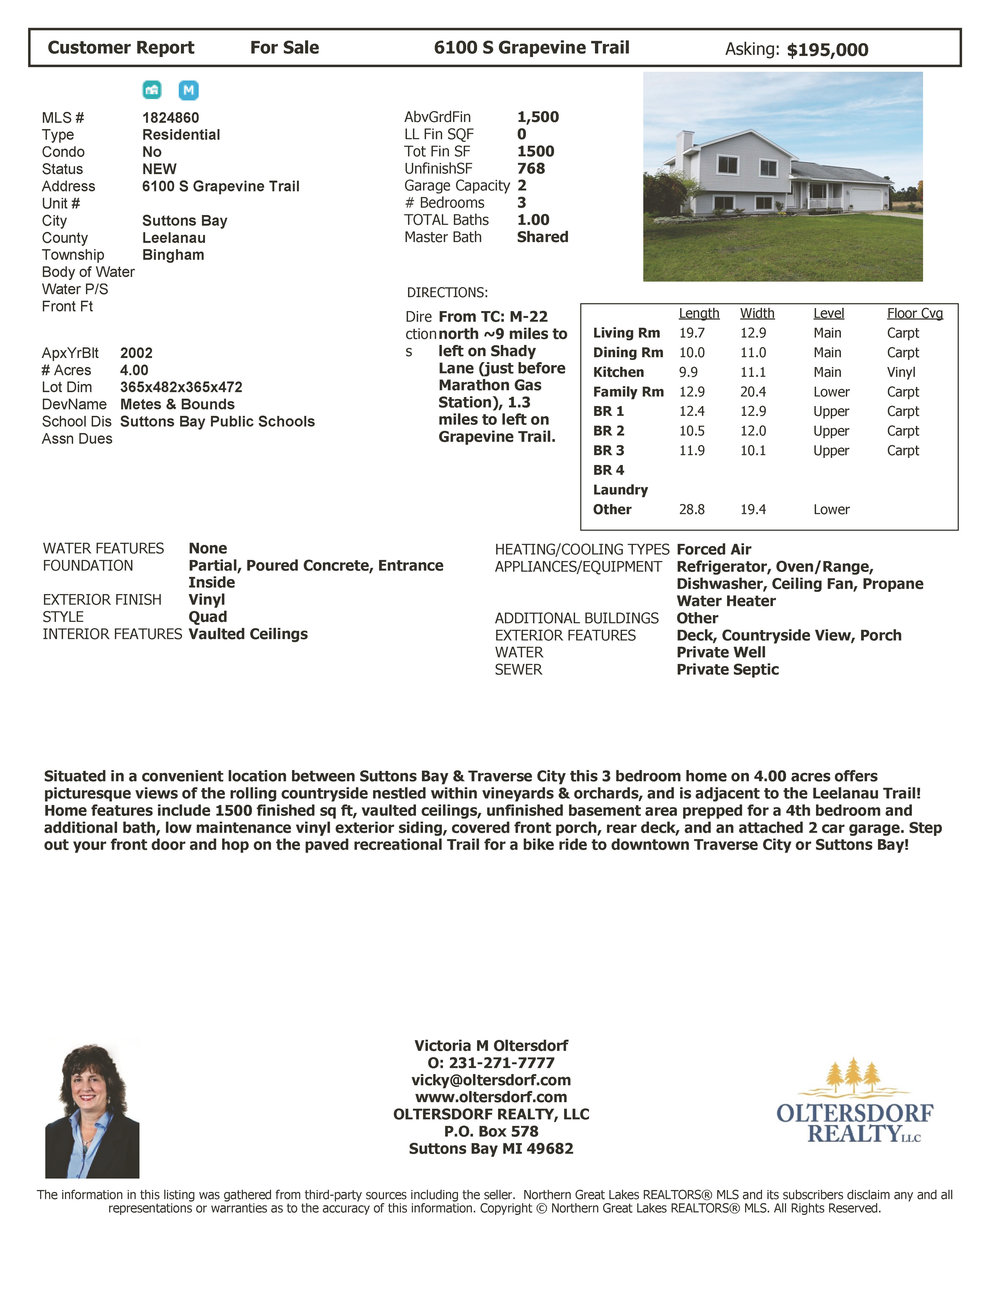 6100 S Grapevine Trail, Suttons Bay, Leelanau County Home for sale by Oltersdorf Realty LLC - Marketing Packet (6).jpg